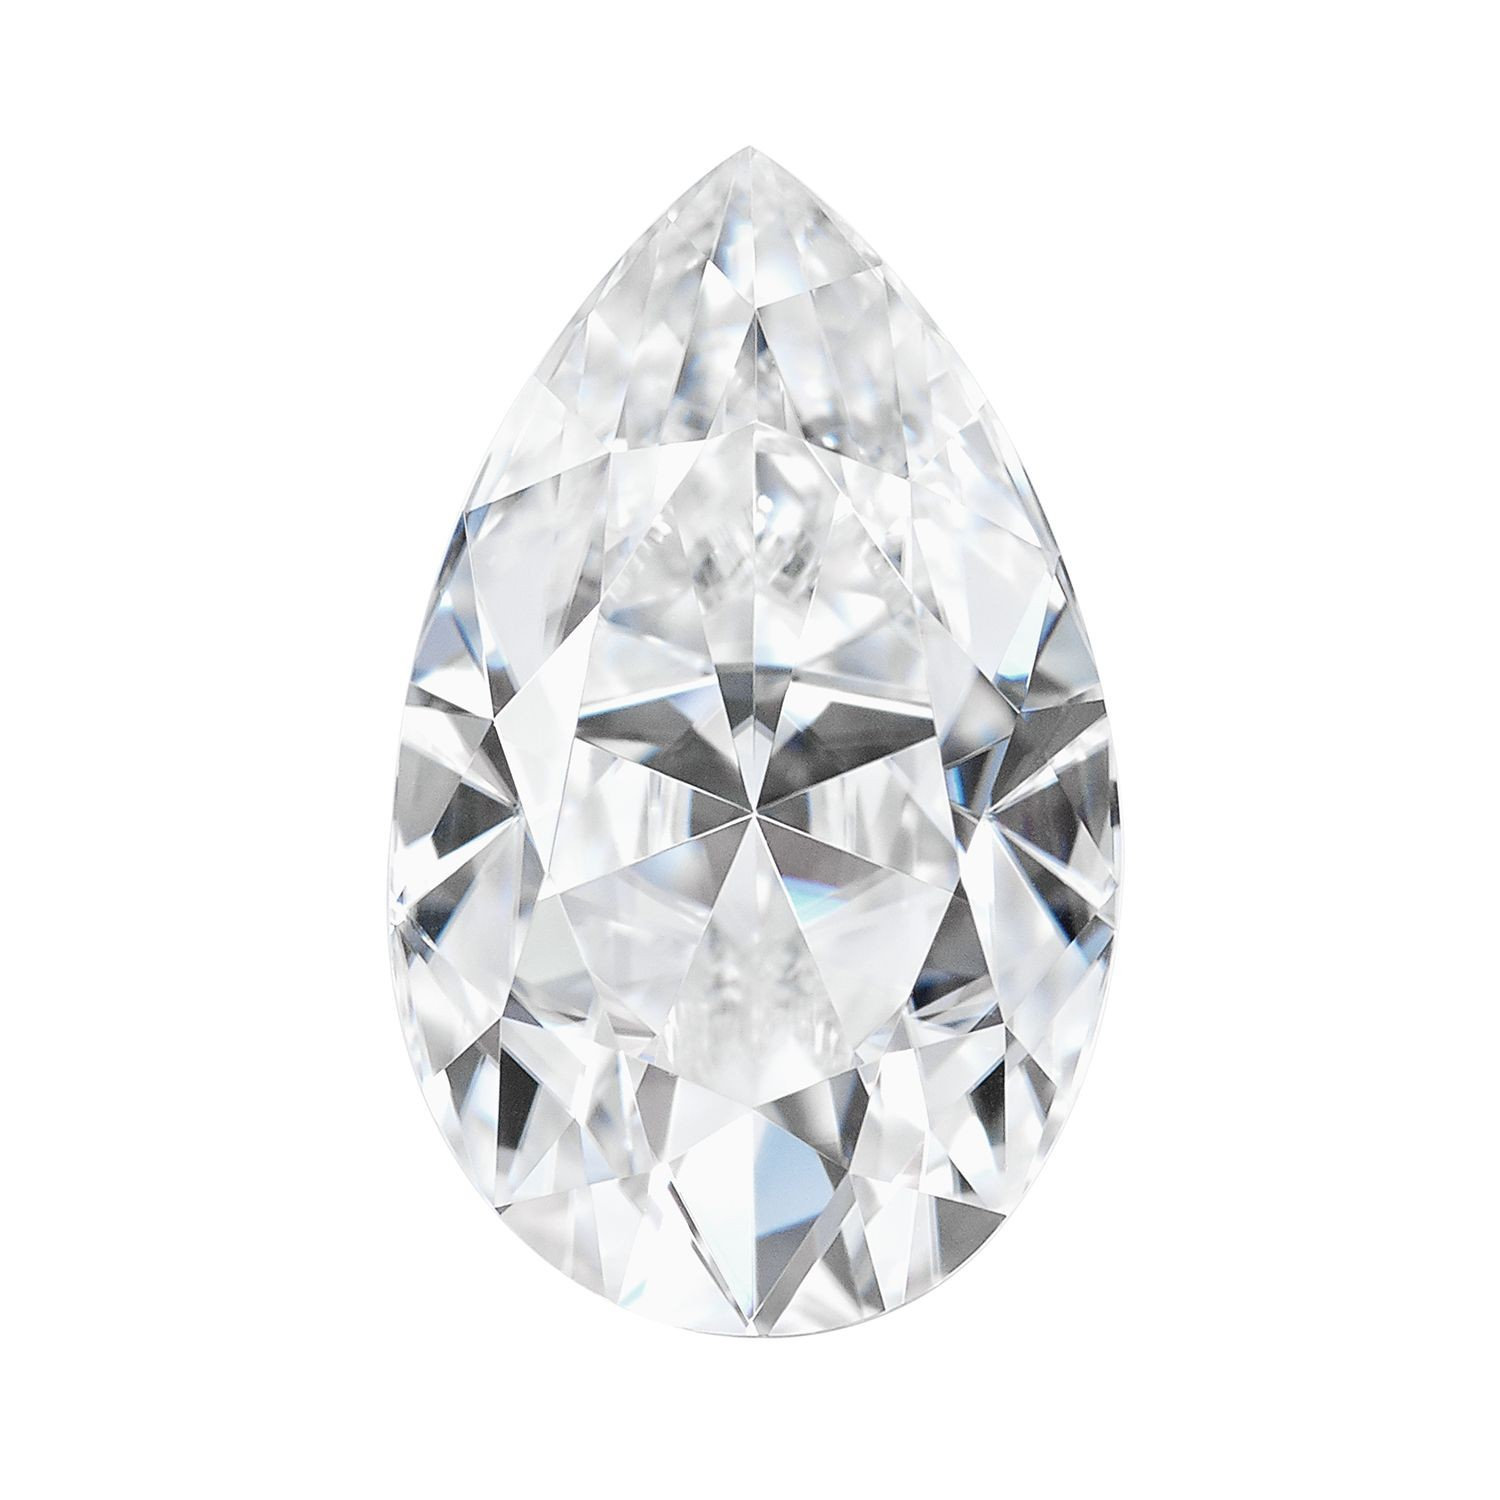 0 70 carats, Charles & Colvard Forever One™ D-E-F Pear Moissanite, 7 x 5 MM  | Tresor Jewelers